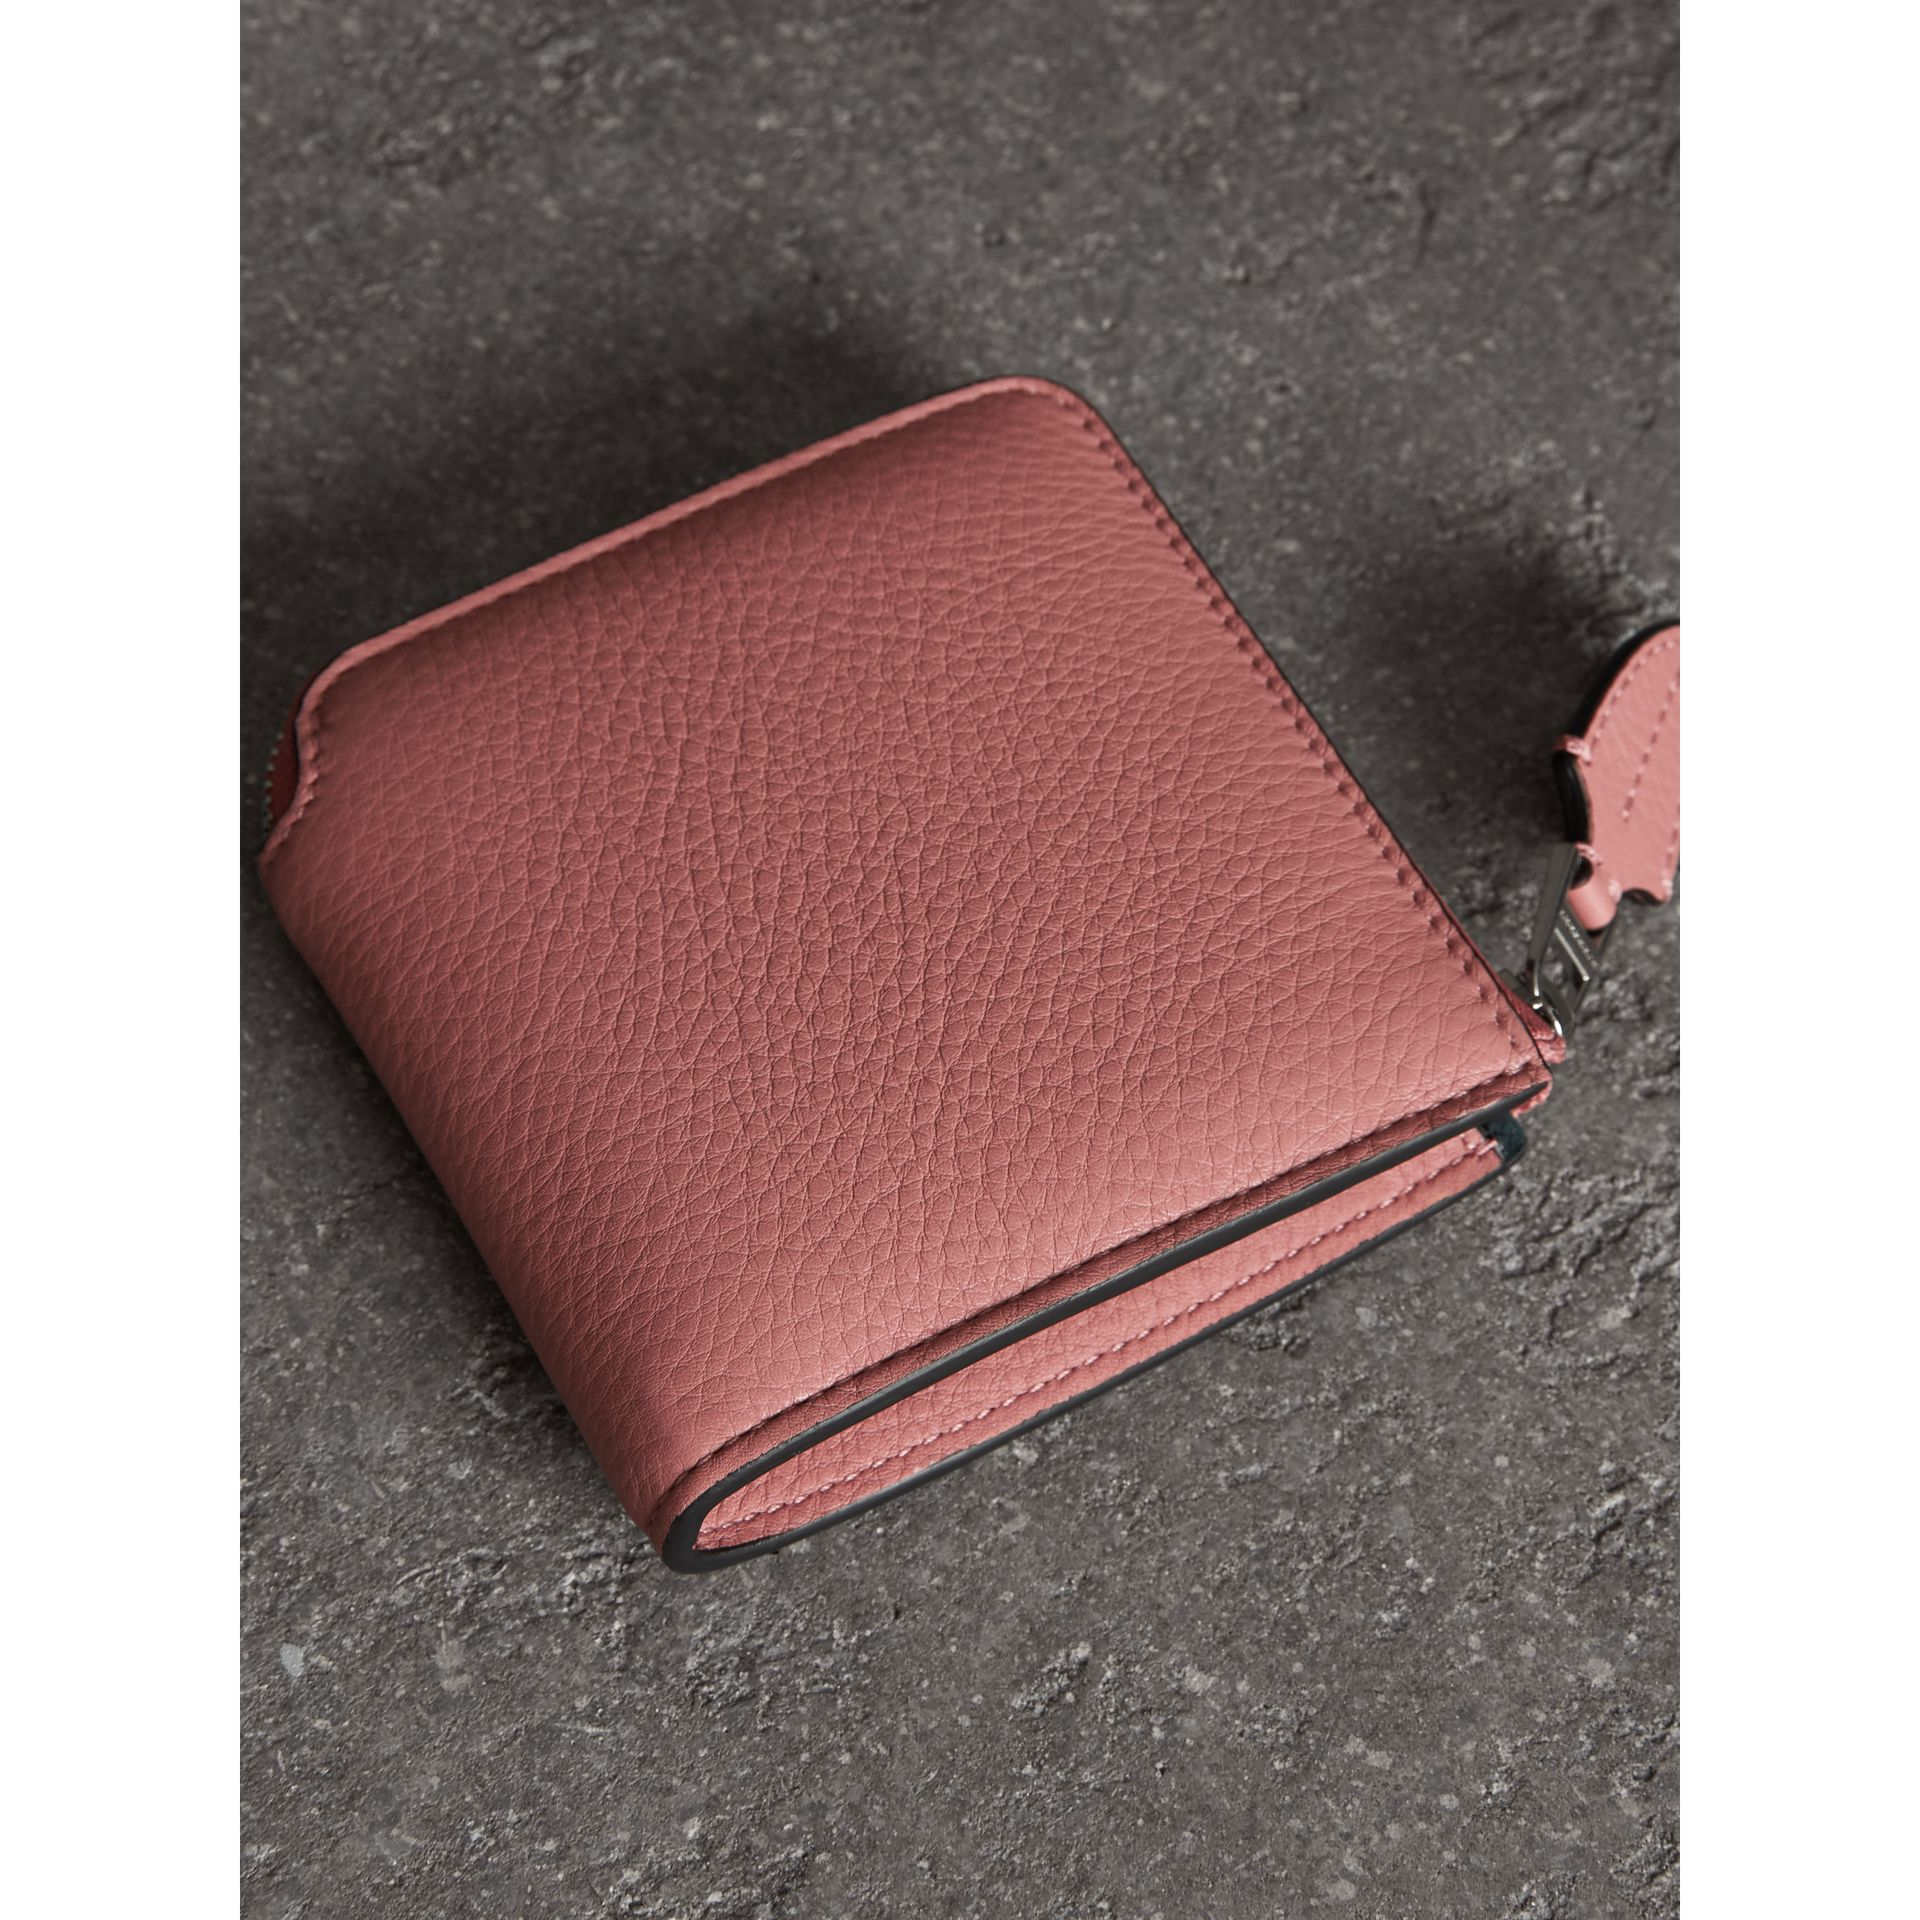 Grainy Leather Square Ziparound Wallet in Dusty Rose - Women | Burberry United Kingdom - gallery image 2